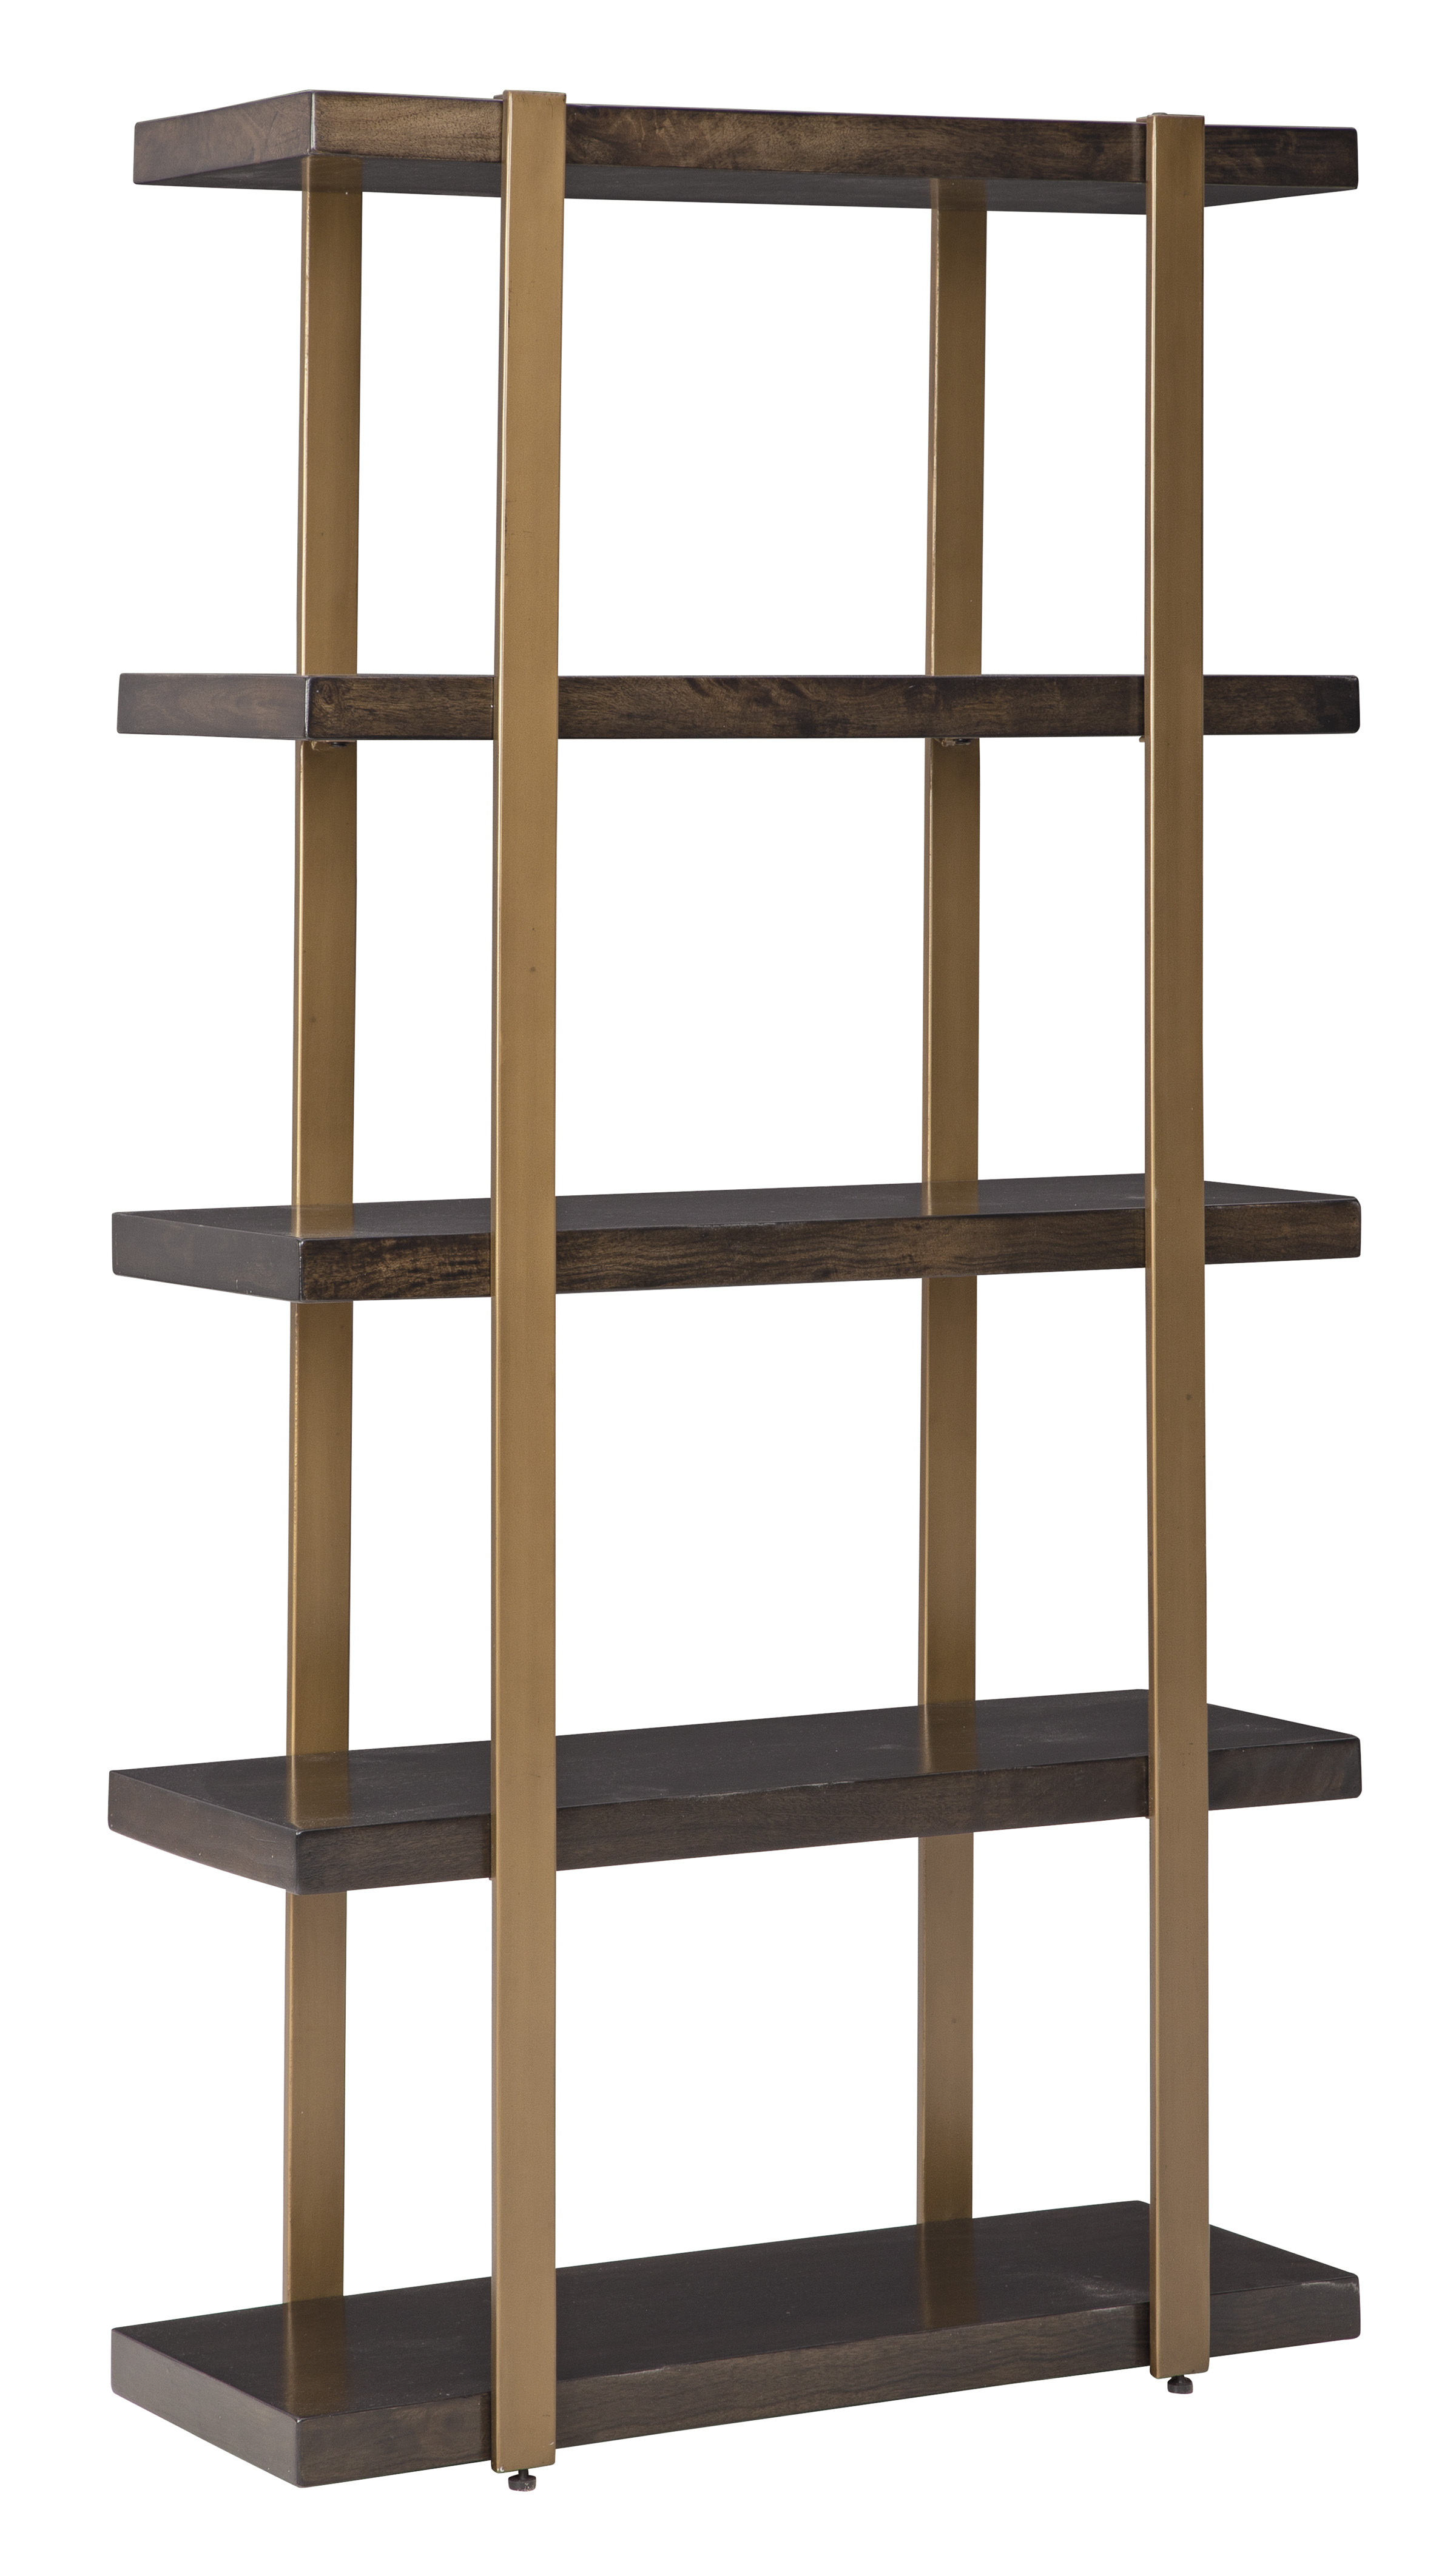 Beckville Bookcase by Signature Design by Ashley at Furniture Barn